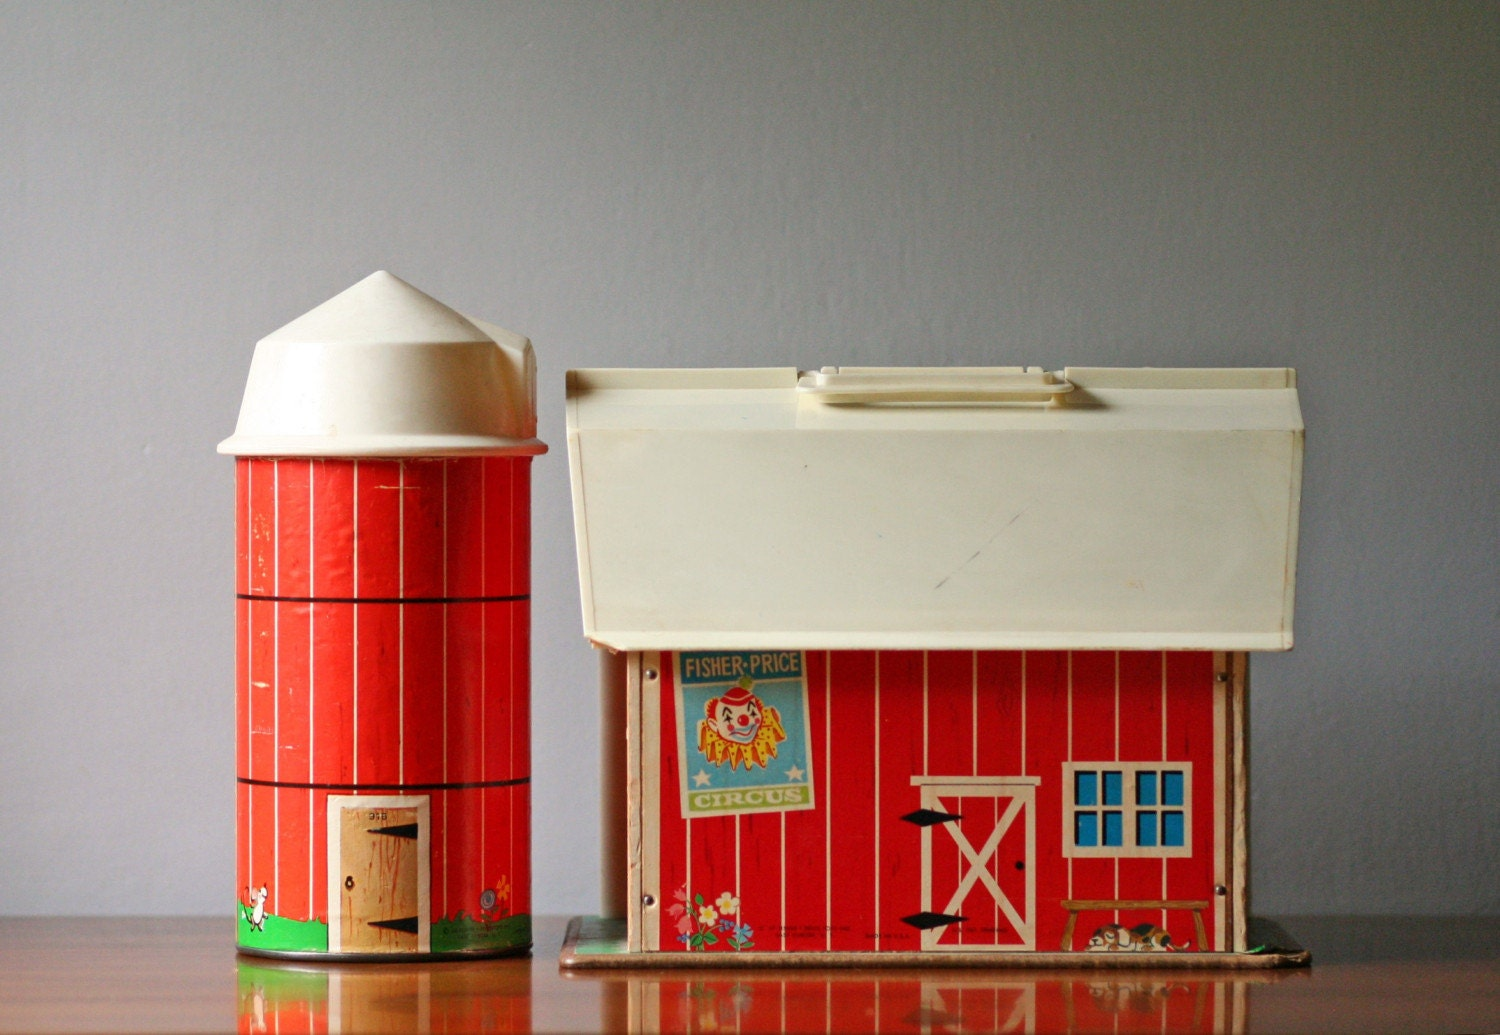 vintage Fisher Price family farm toys 1960s